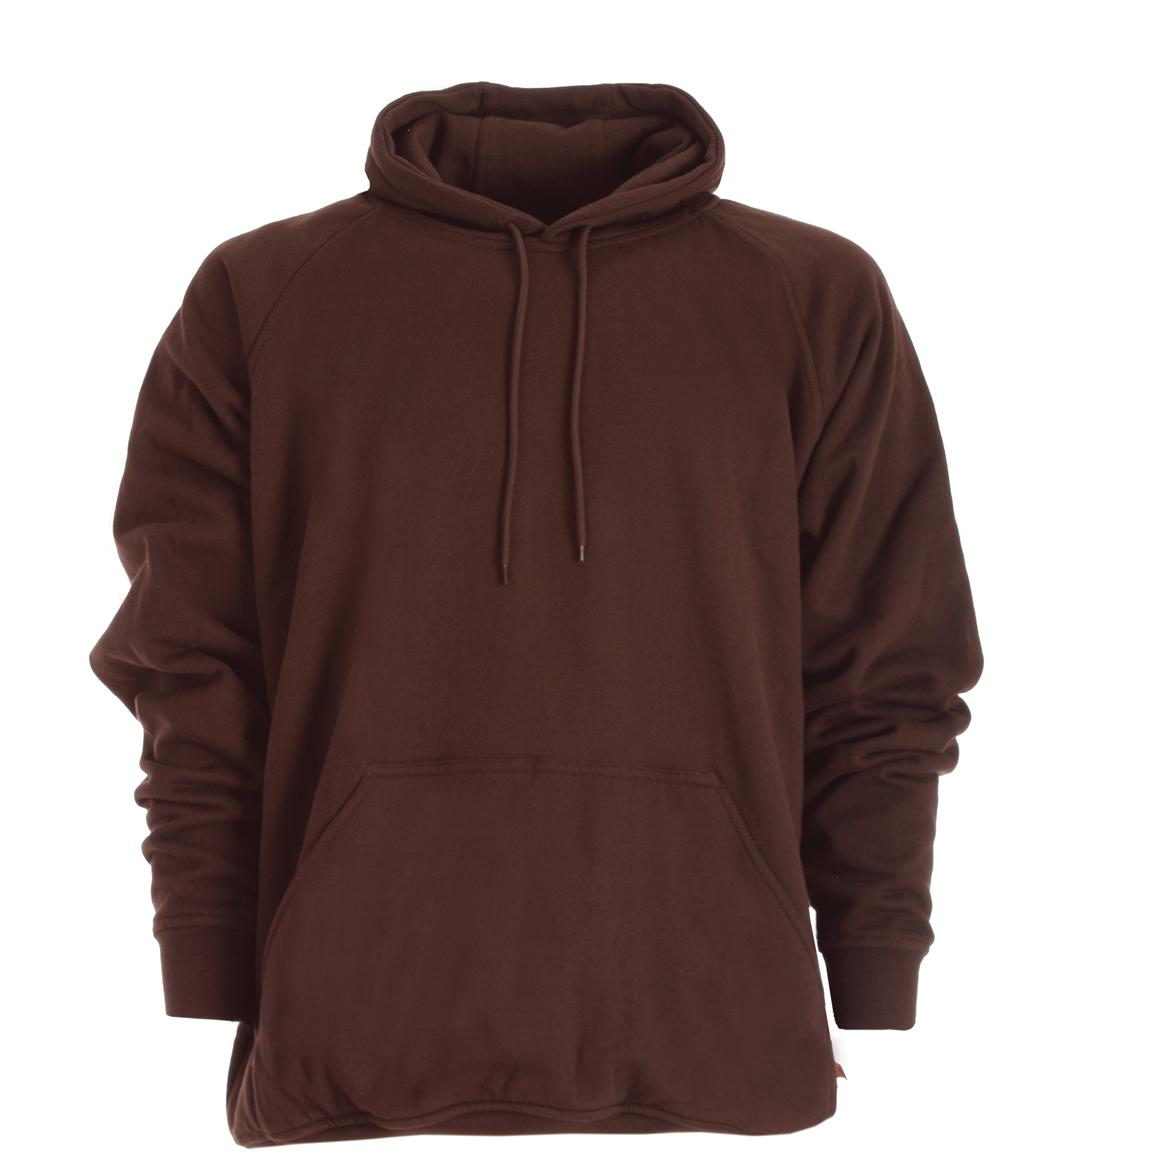 Berne Apparel® Thermal Lined Fleece Hooded Pullover, Dark Brown